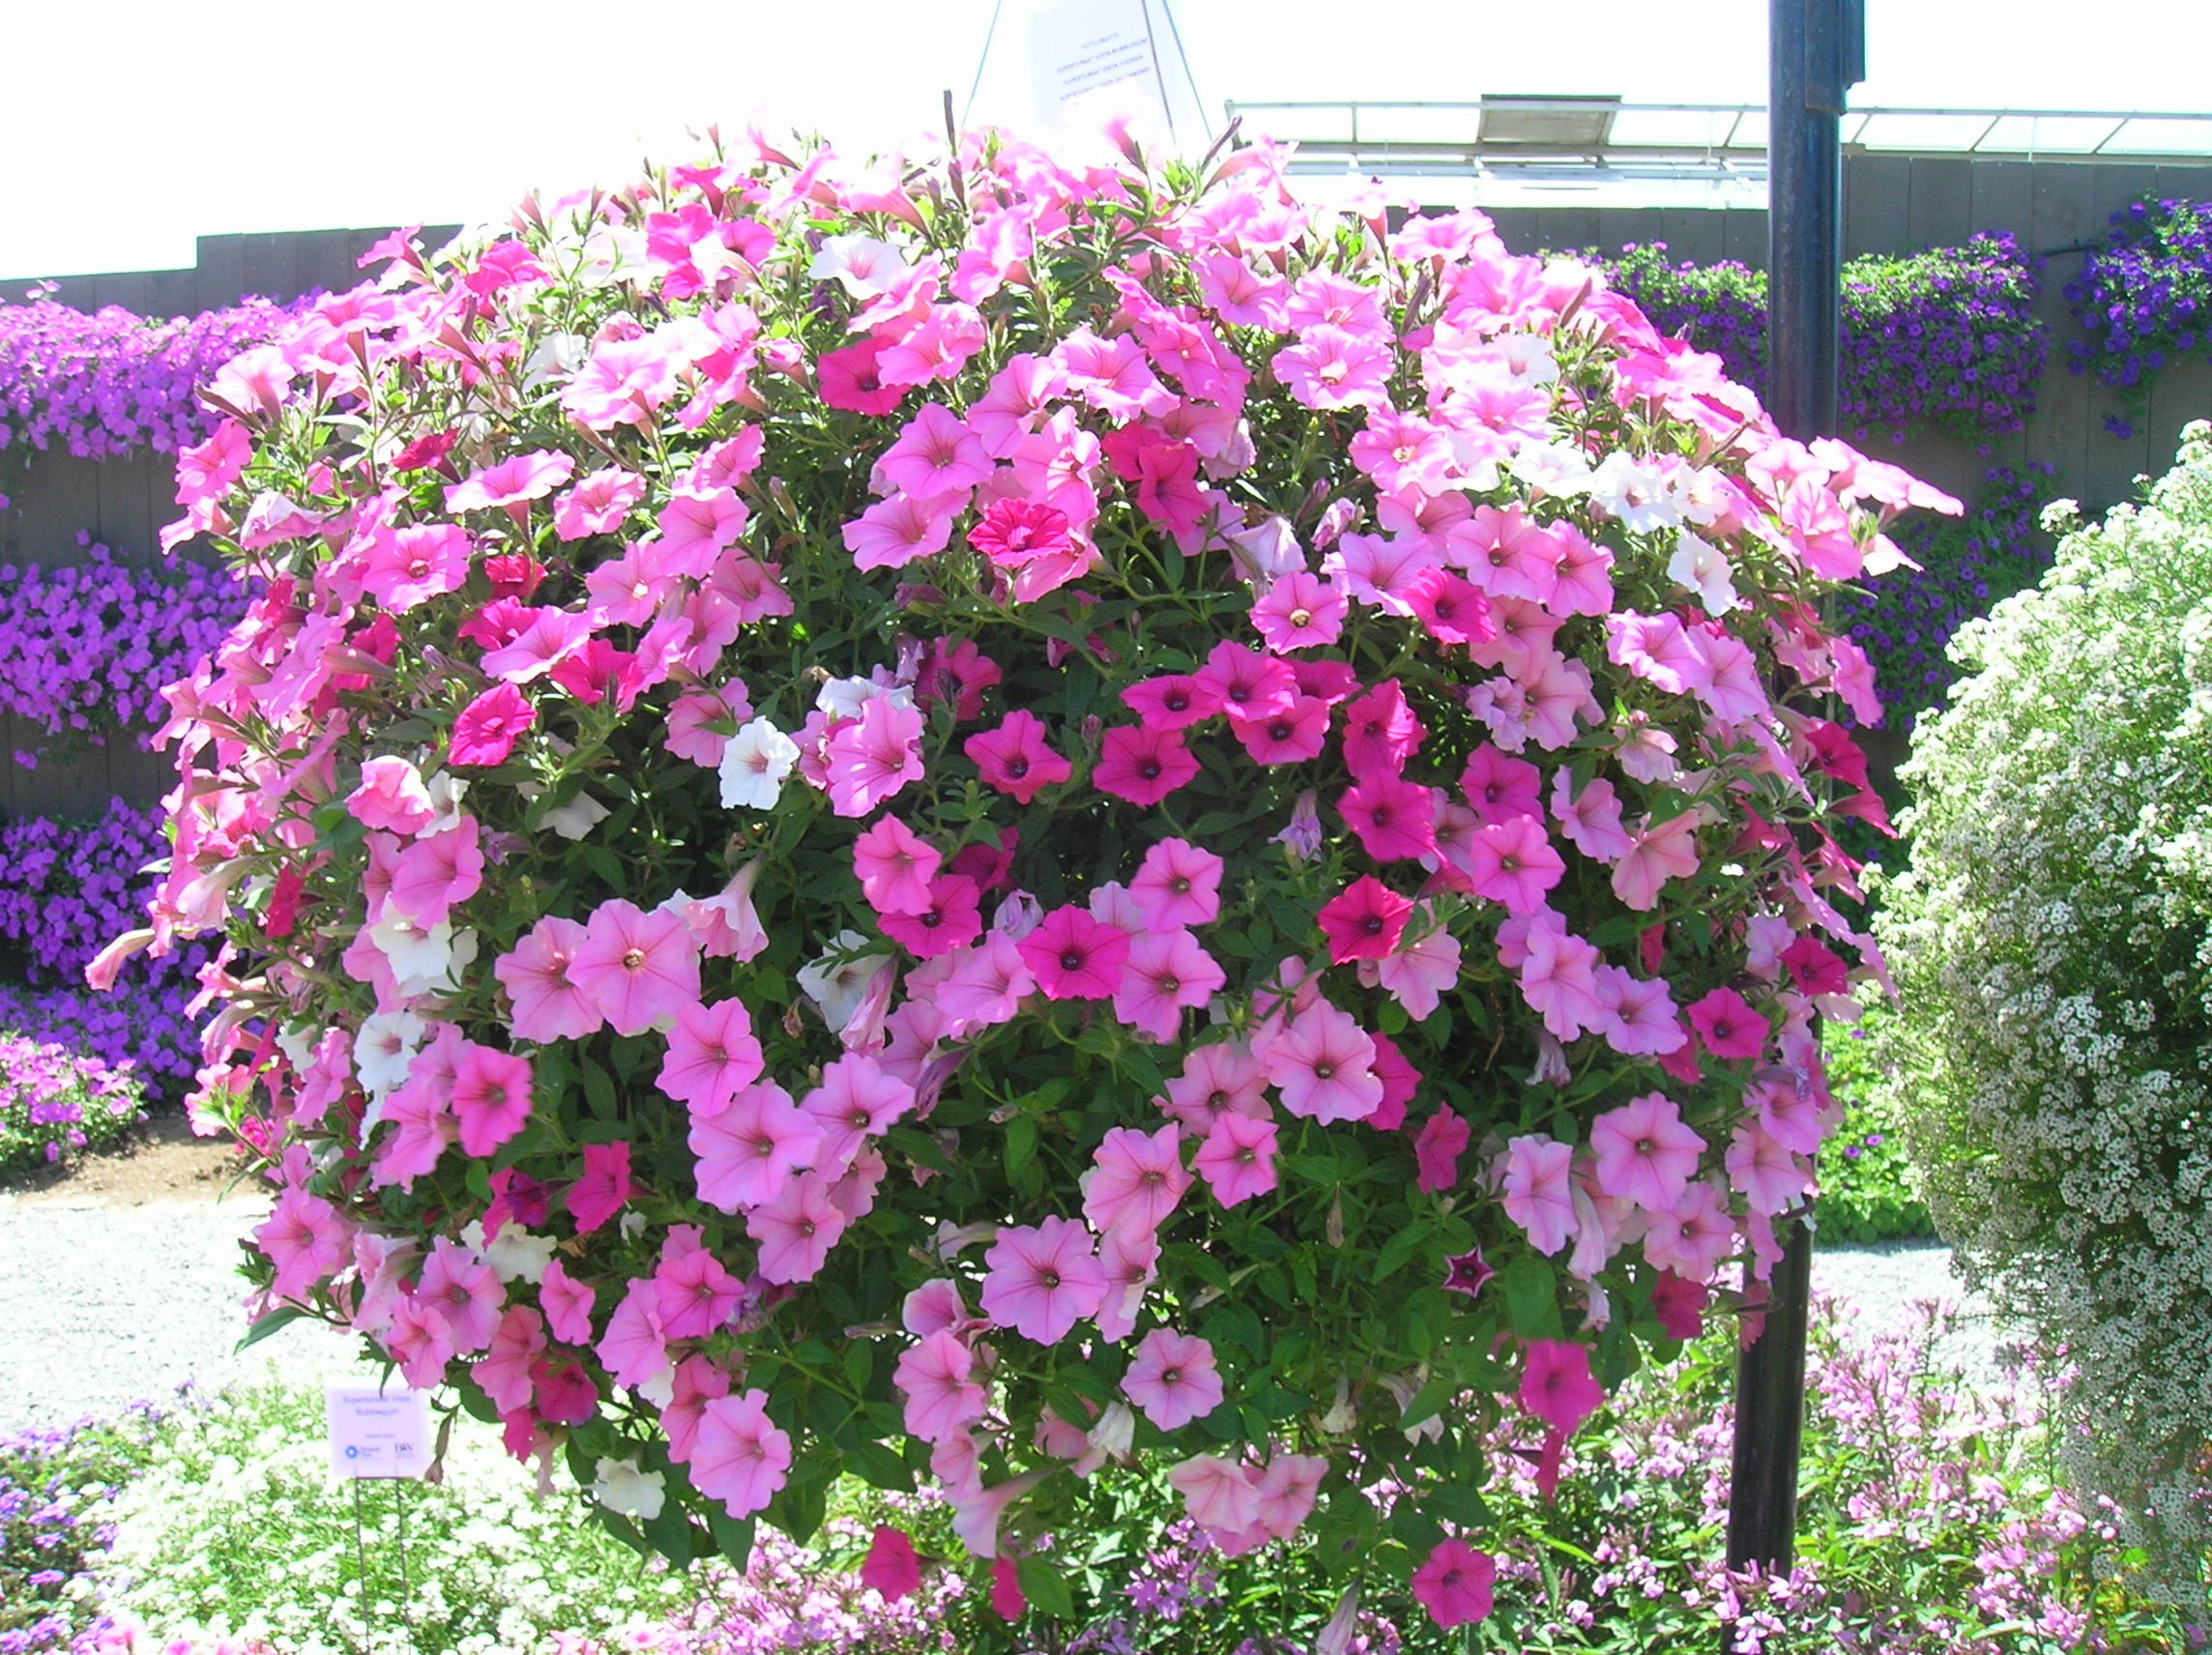 how to grow petunia gardening petunia growing pertunia annual, Natural flower